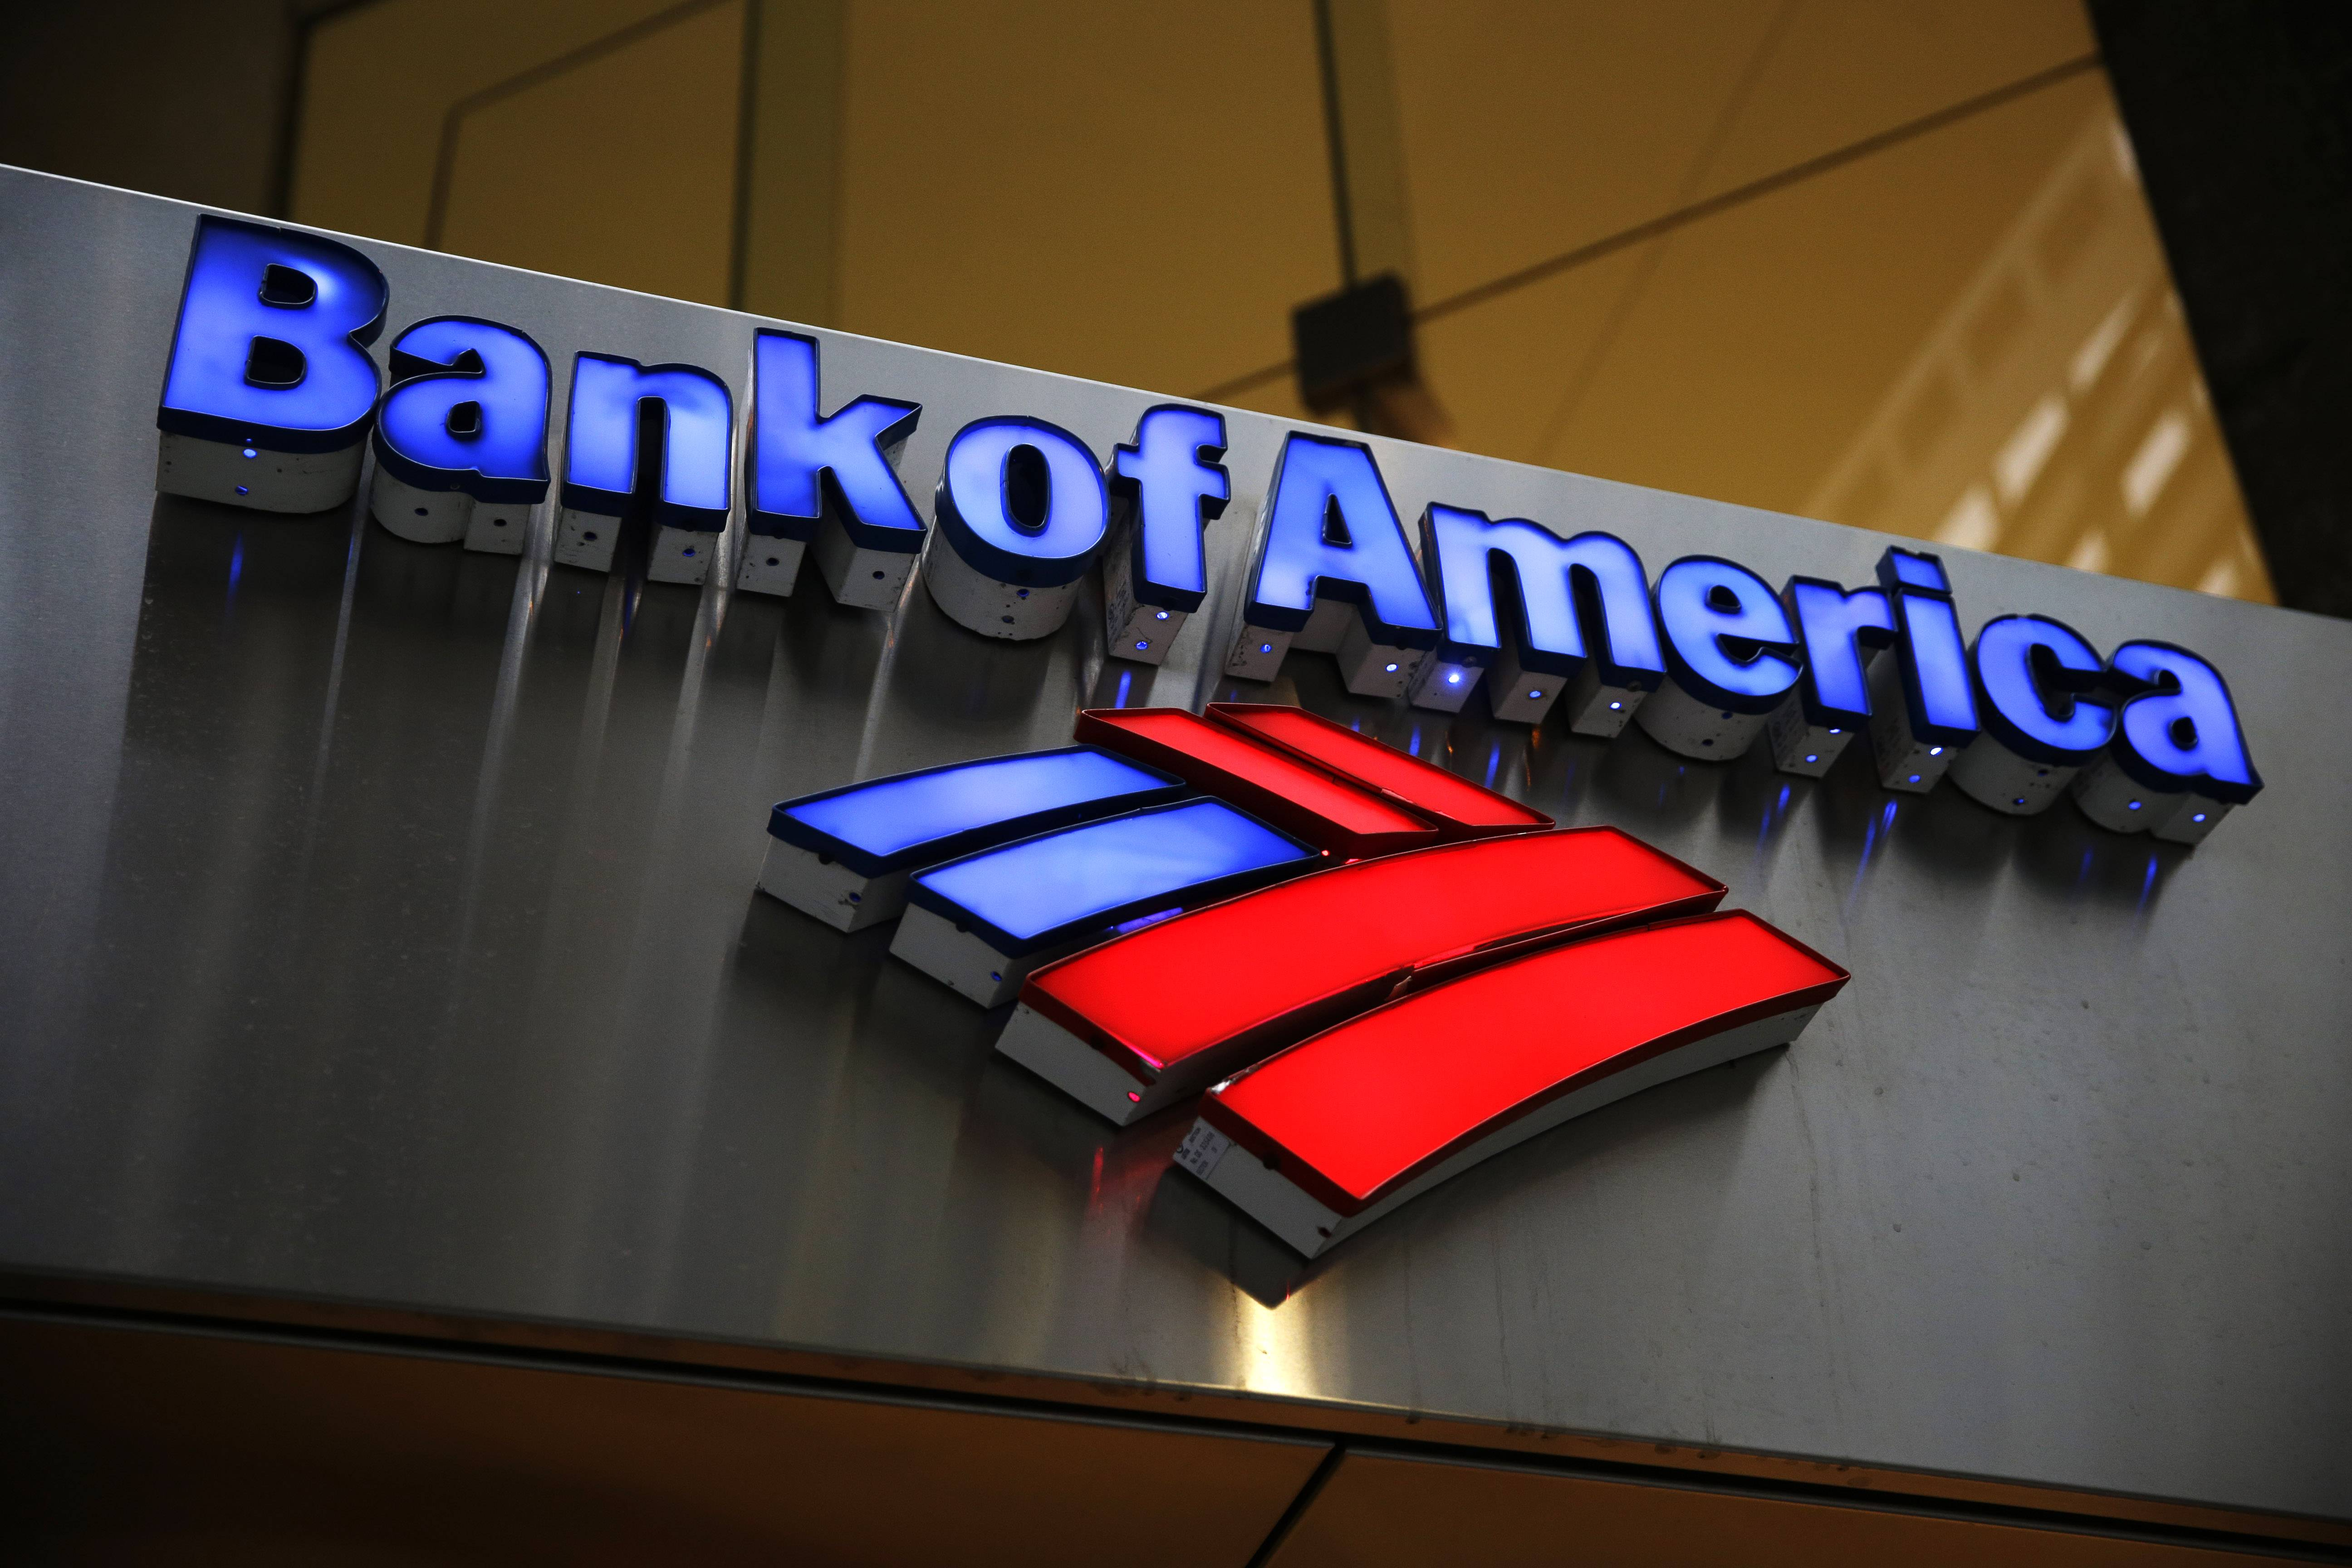 In this Jan. 14, 2014, file photo, a Bank of America sign is photographed in Philadelphia. A person familiar with the matter says Bank of America has agreed to pay between $16 billion and $17 billion to settle an investigation into its sale of mortgage-backed securities before the financial crisis.